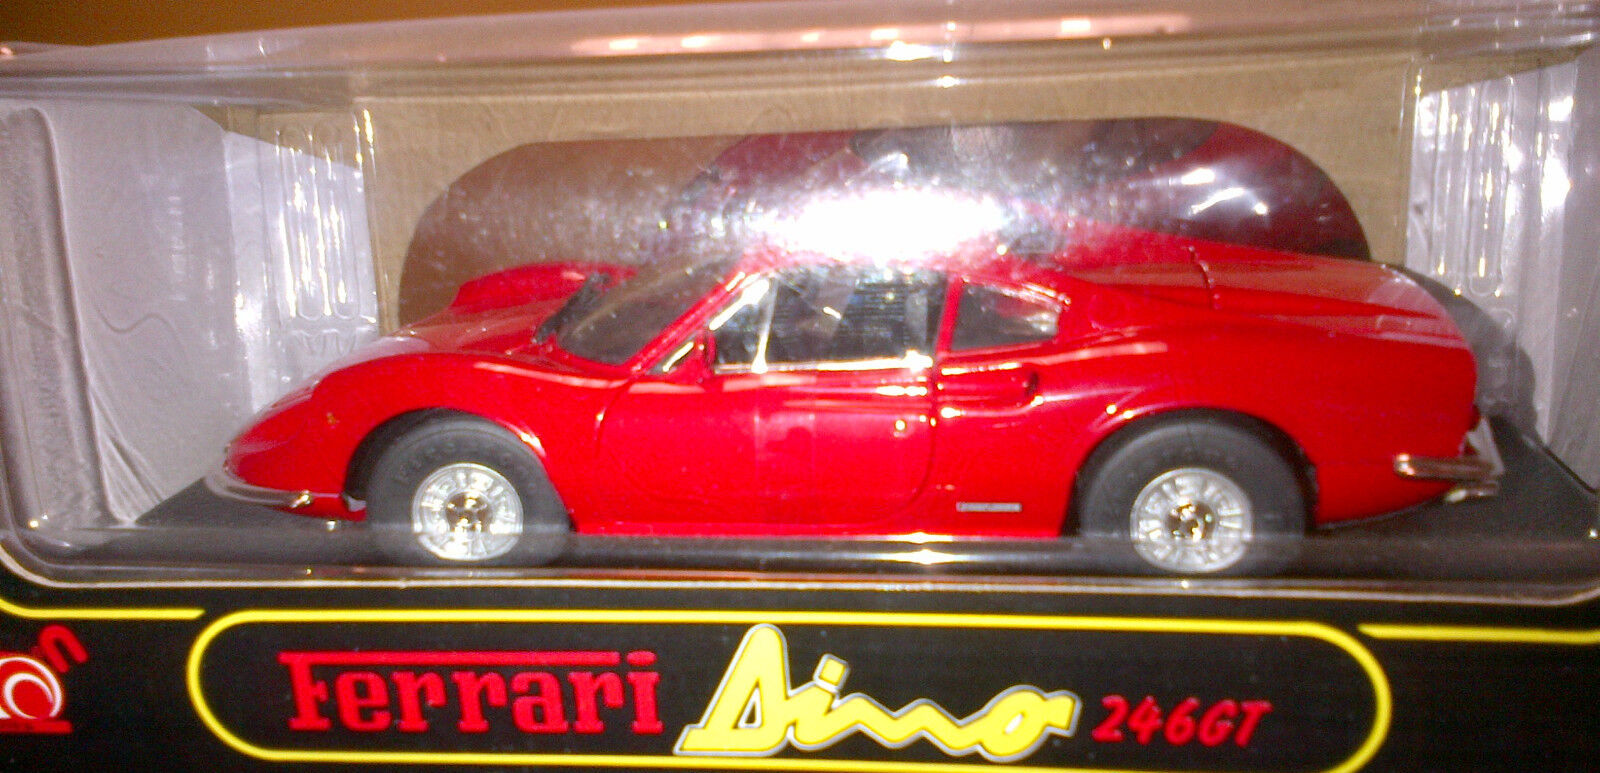 FERRARI 246 DINO RED BY ANSON OLD RELEASE 1 18 BRAND NEW IN BOX MINT CONDITION